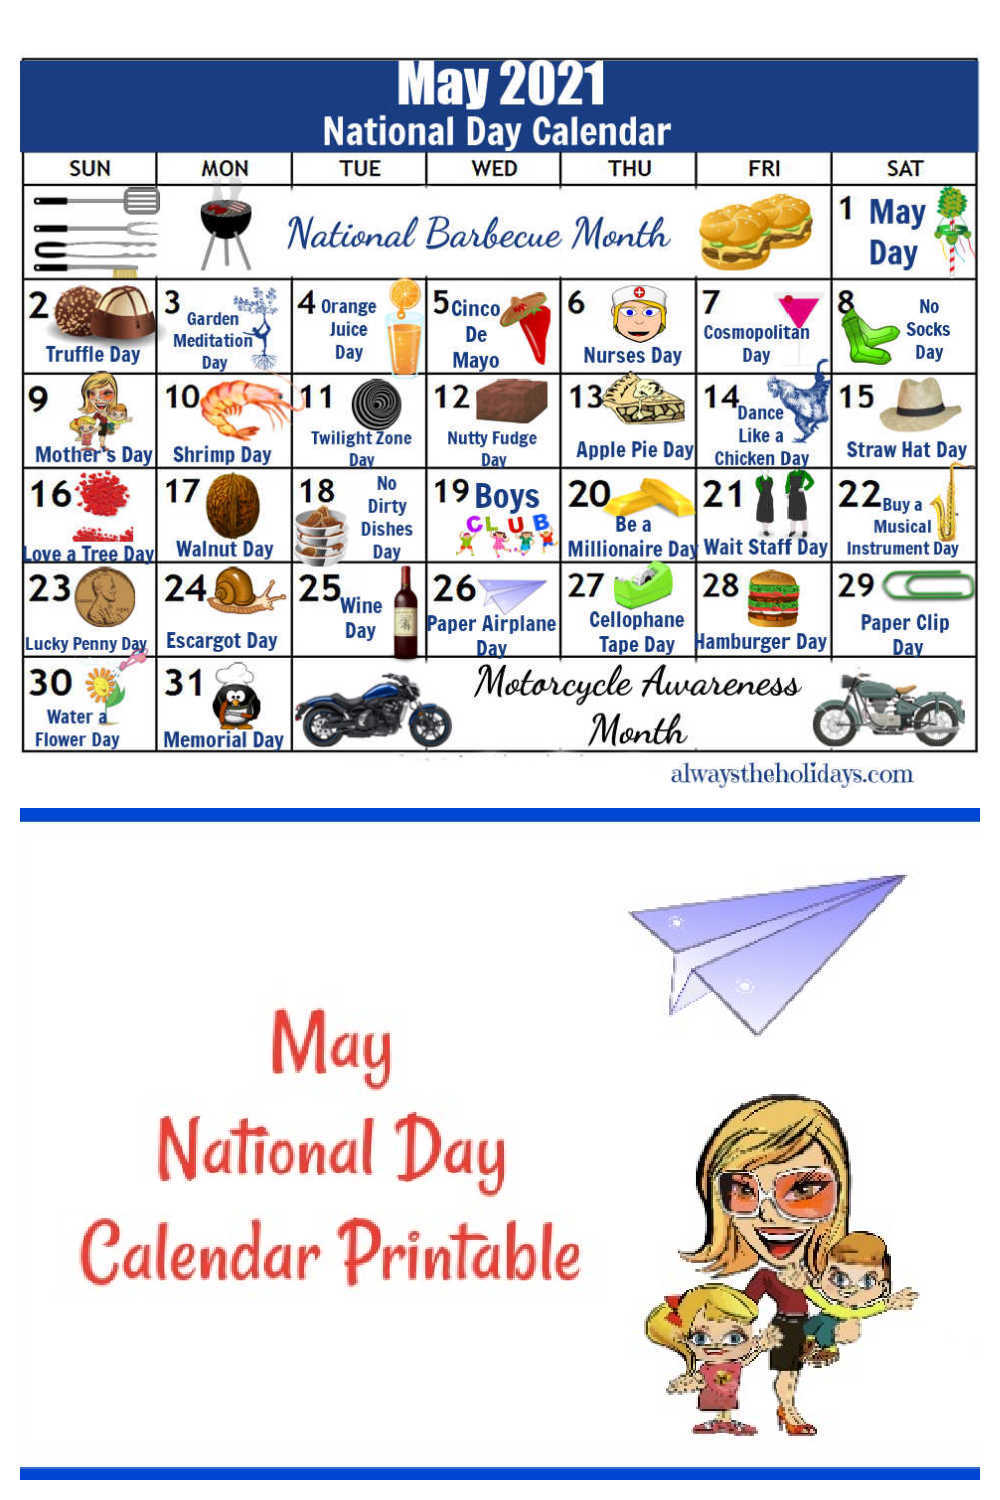 Calendar of National Days In May 2021 with mother, kids and paper airplane.